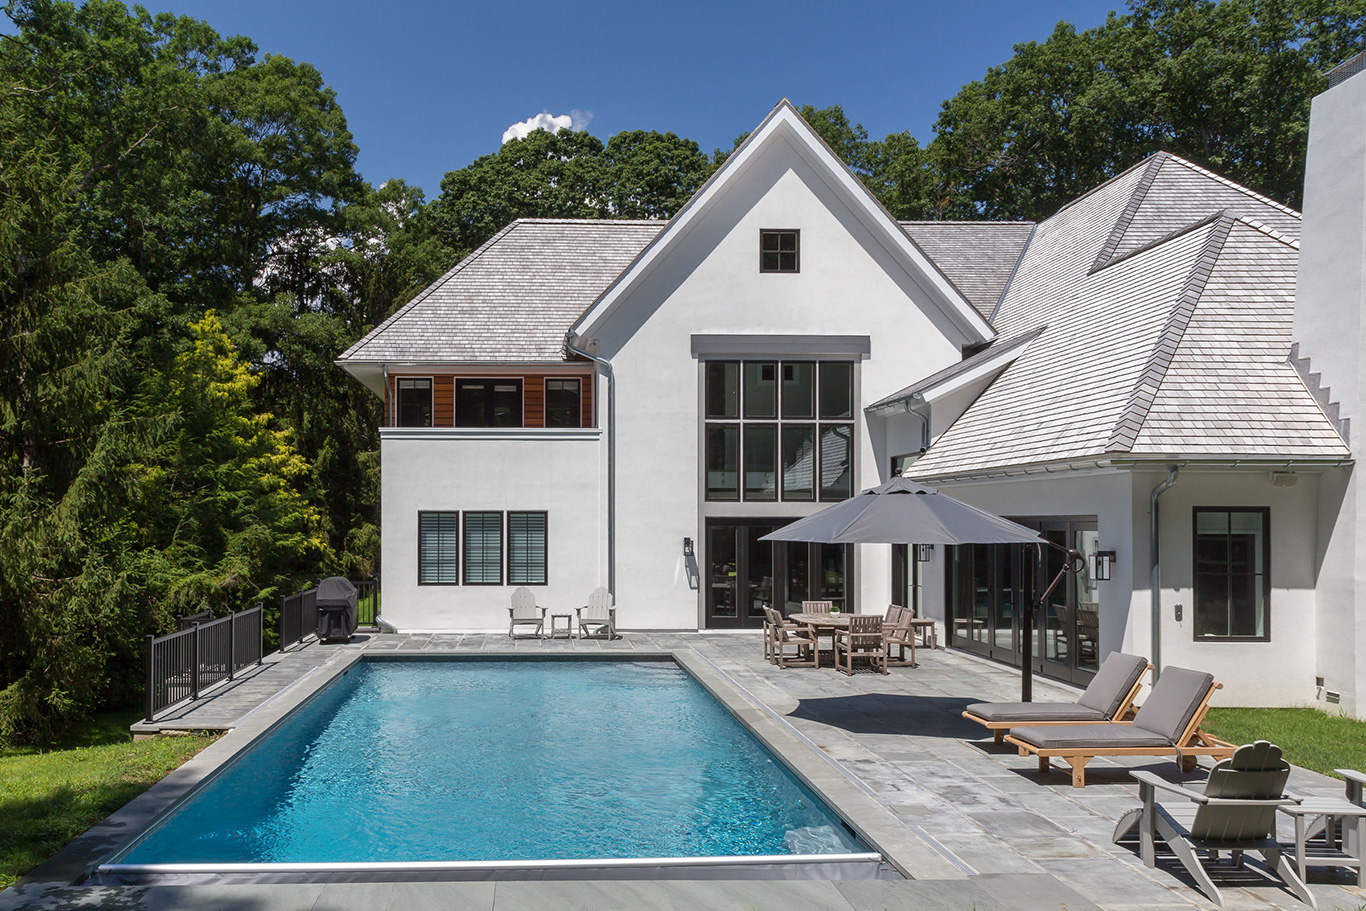 WESTPORT, CT<br>Dogwood Lane<br><a href='https://shorelinepaintingct.com/portfolio/dogwood-ln-westport-ct/'>Go to link</a>